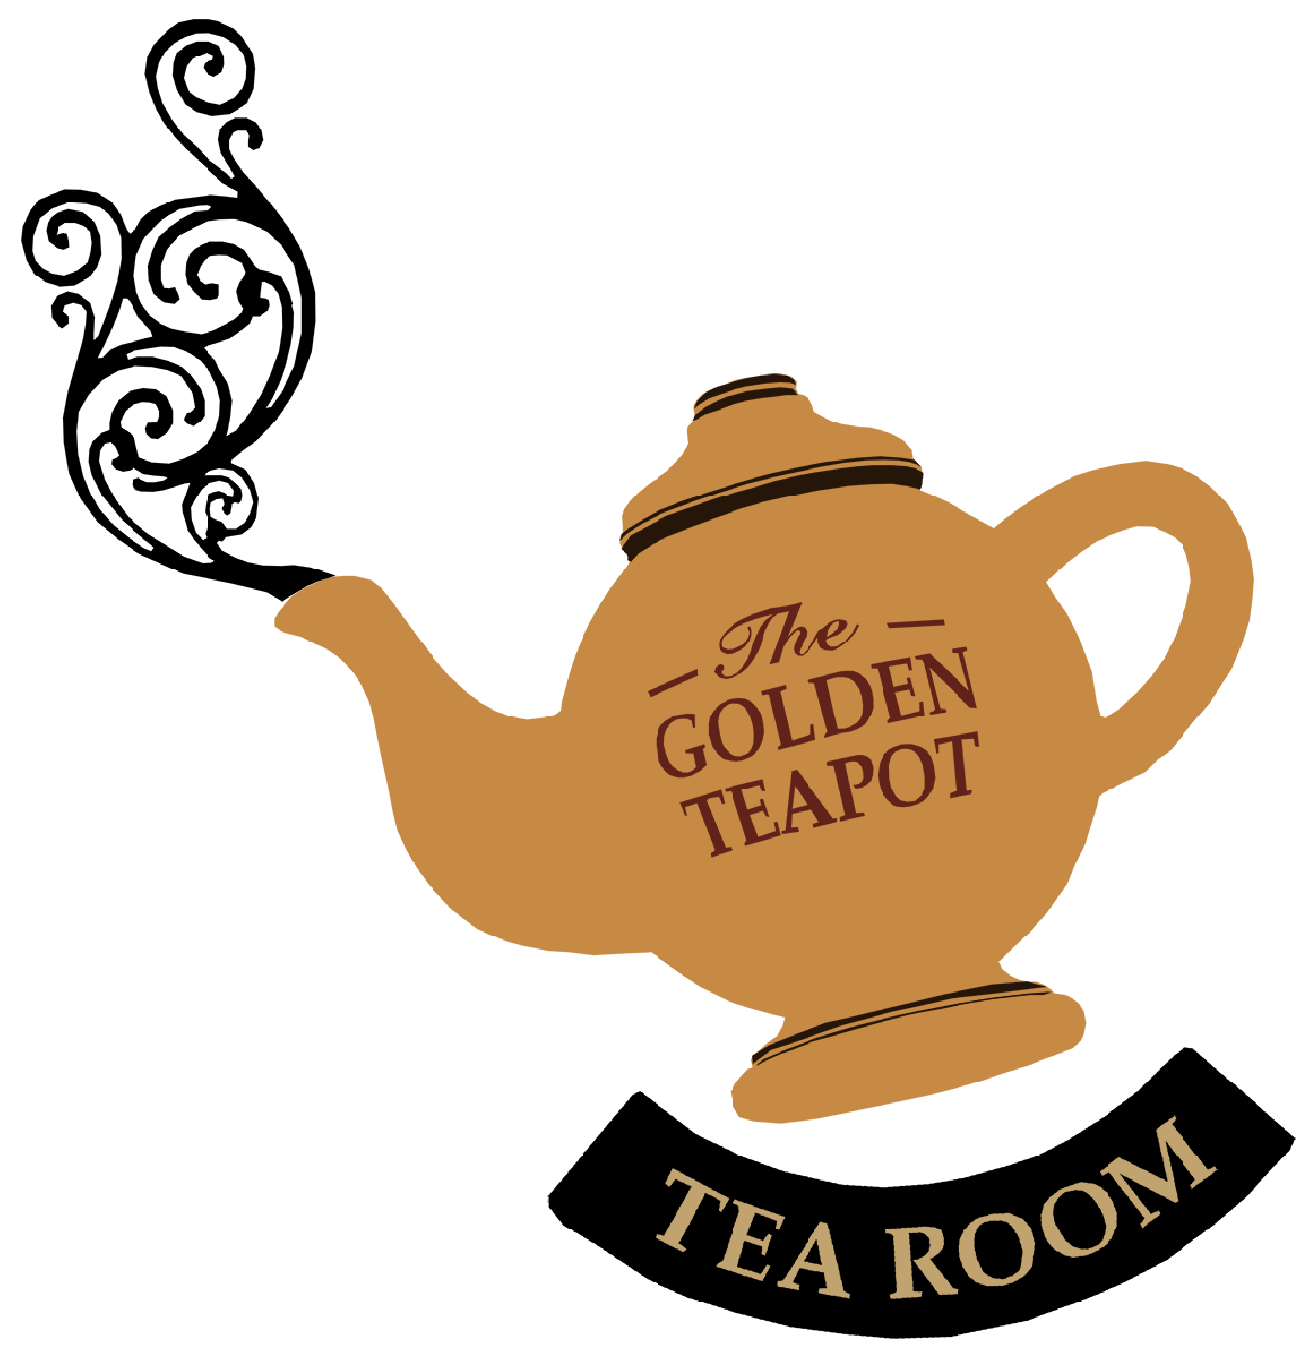 clipart royalty free The Golden Teapot at Glenhyrst